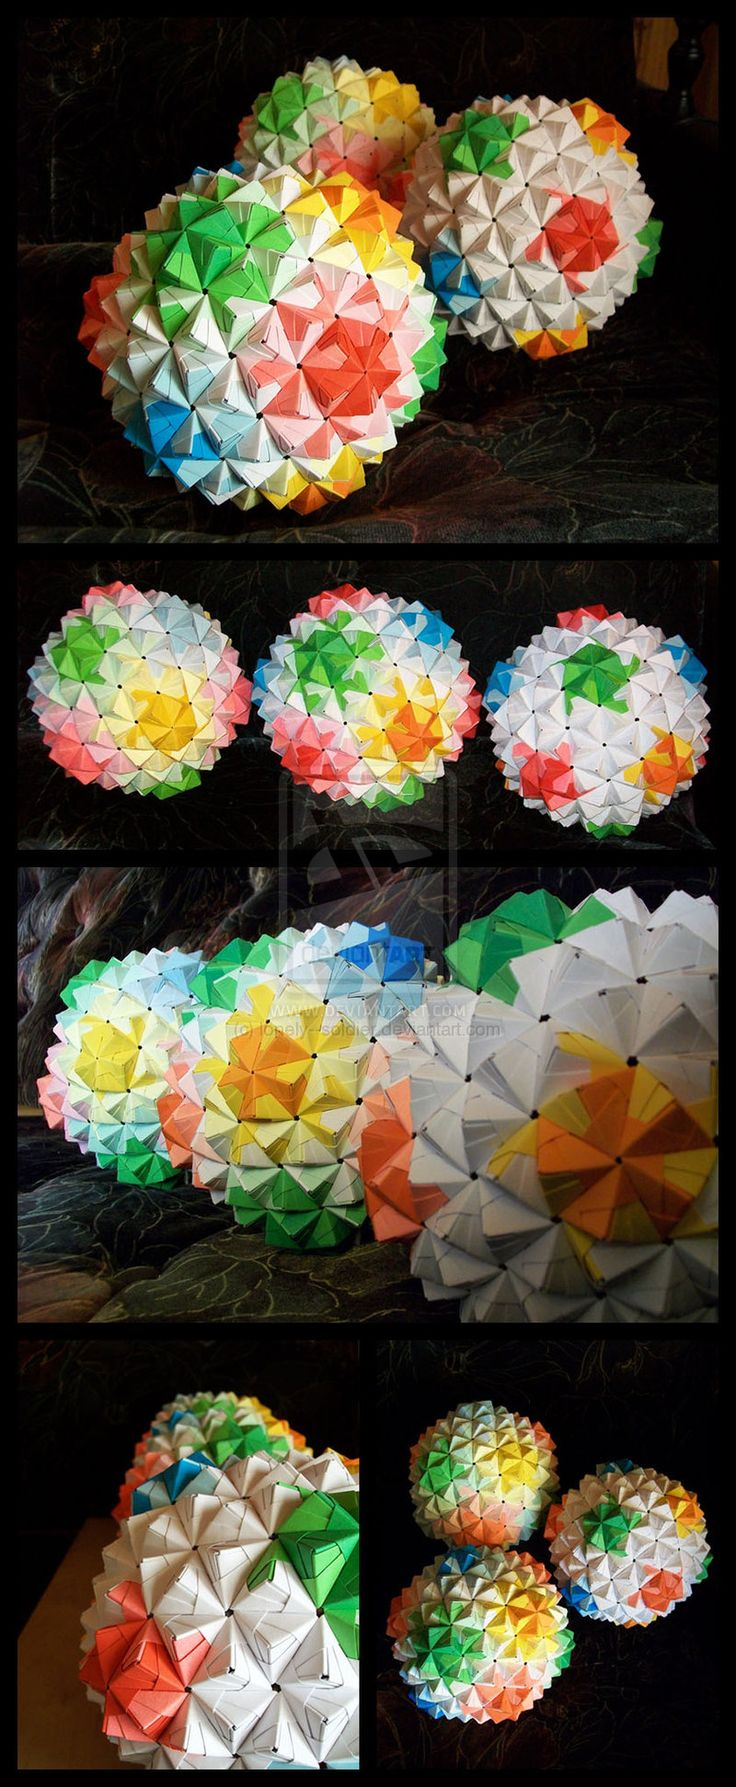 Best 25+ Origami ball ideas on Pinterest | Paper balls ... - photo#37